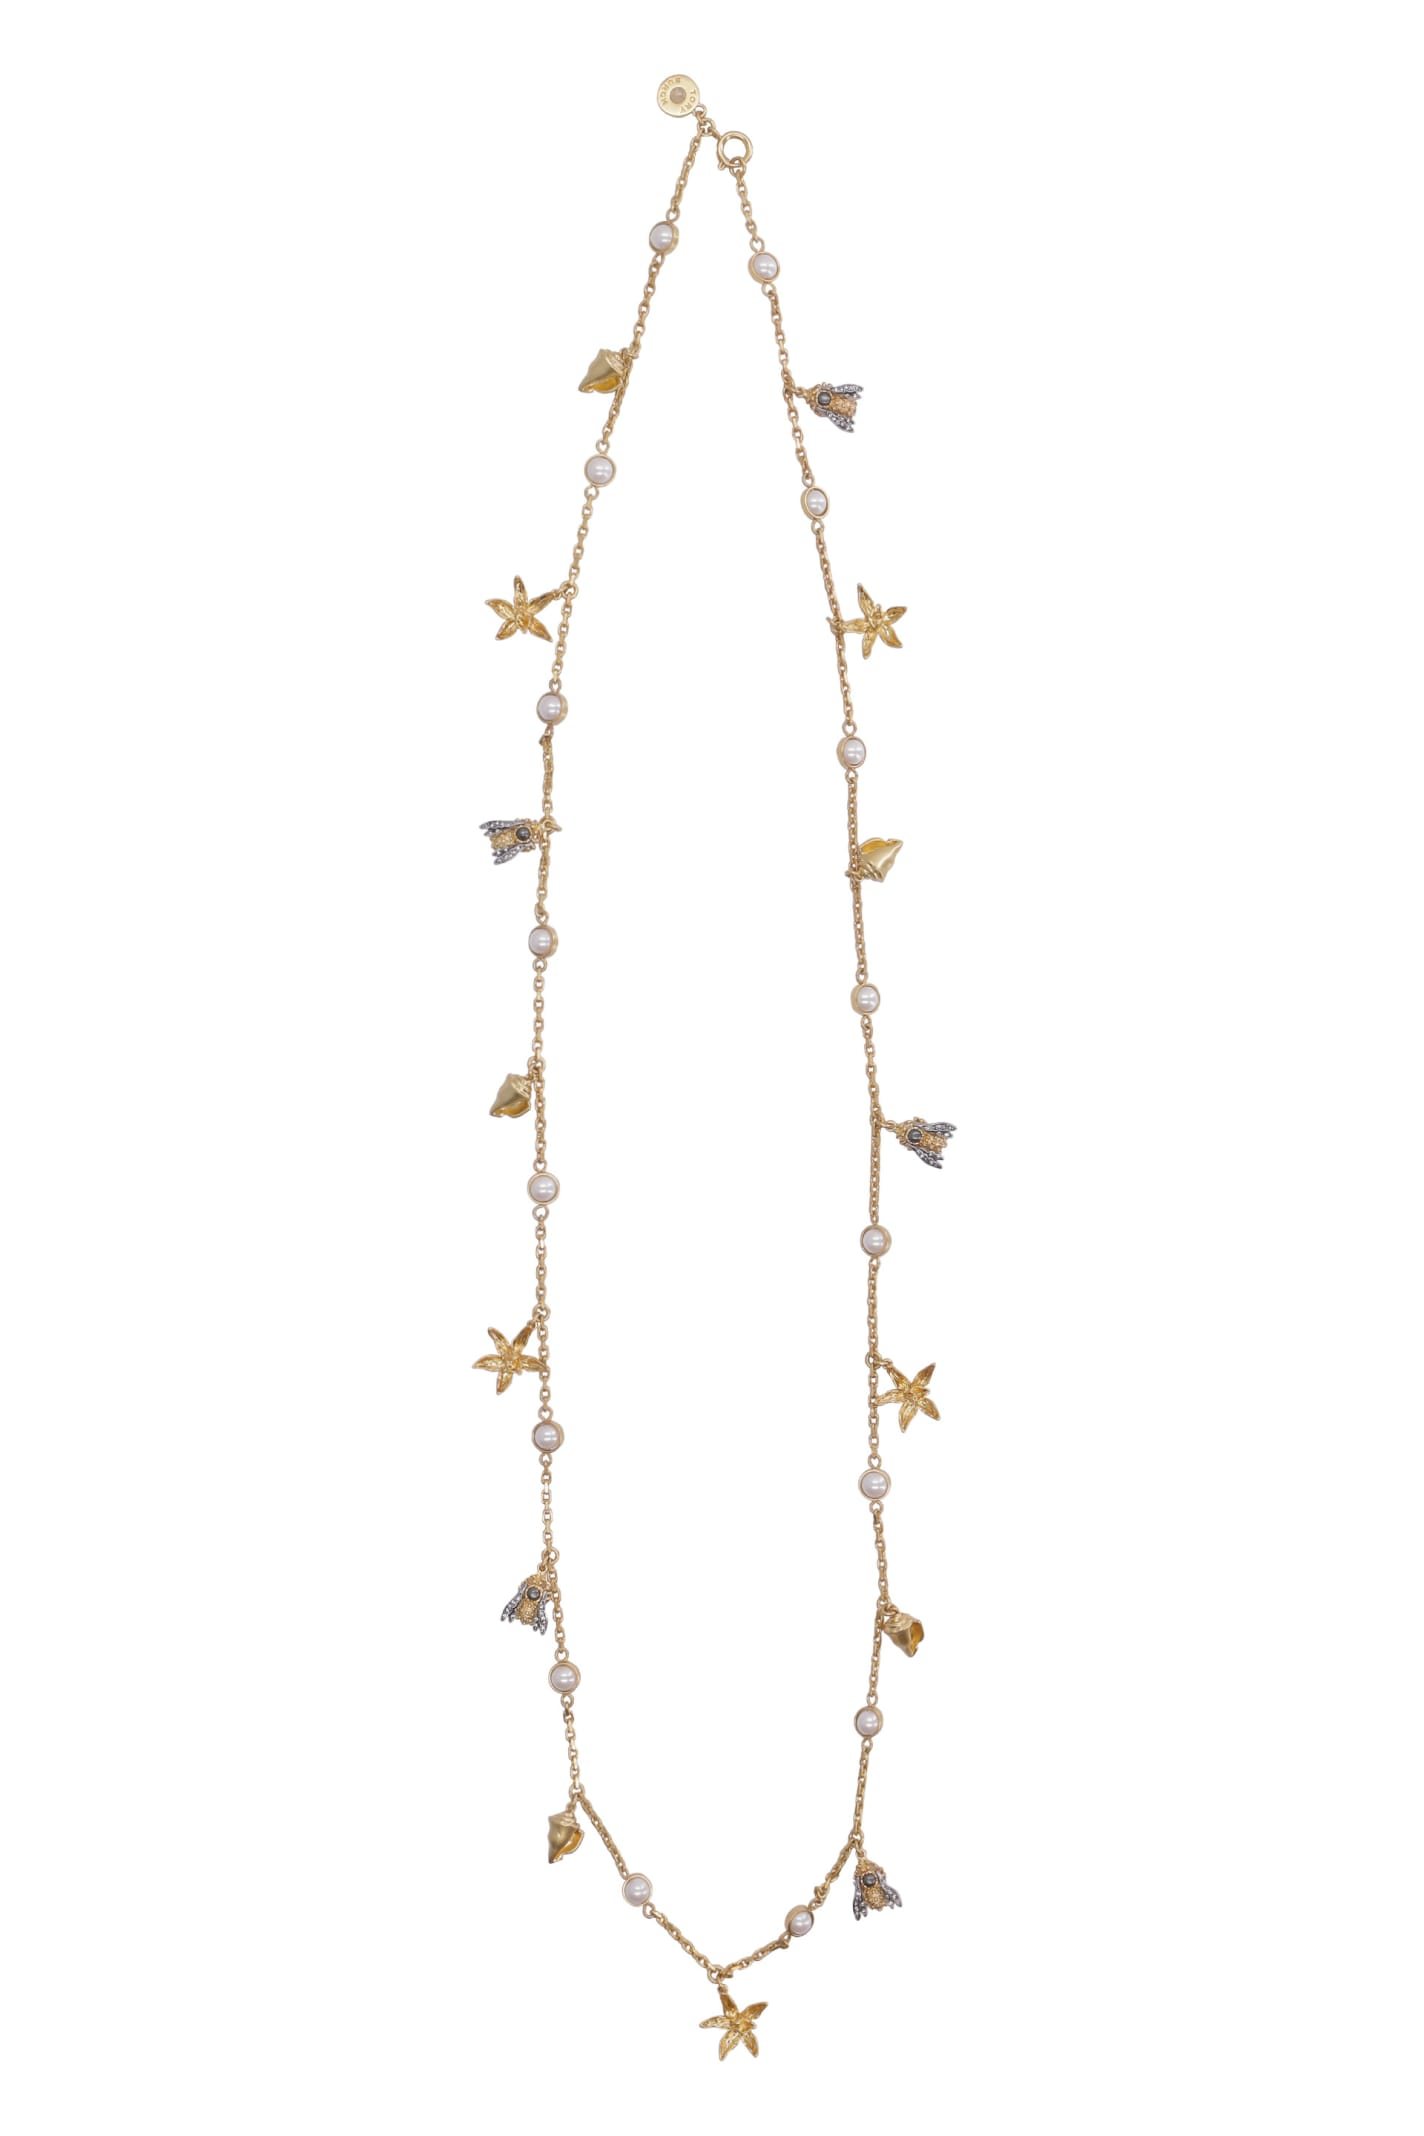 Tory Burch Long Necklace With Decorative Charms